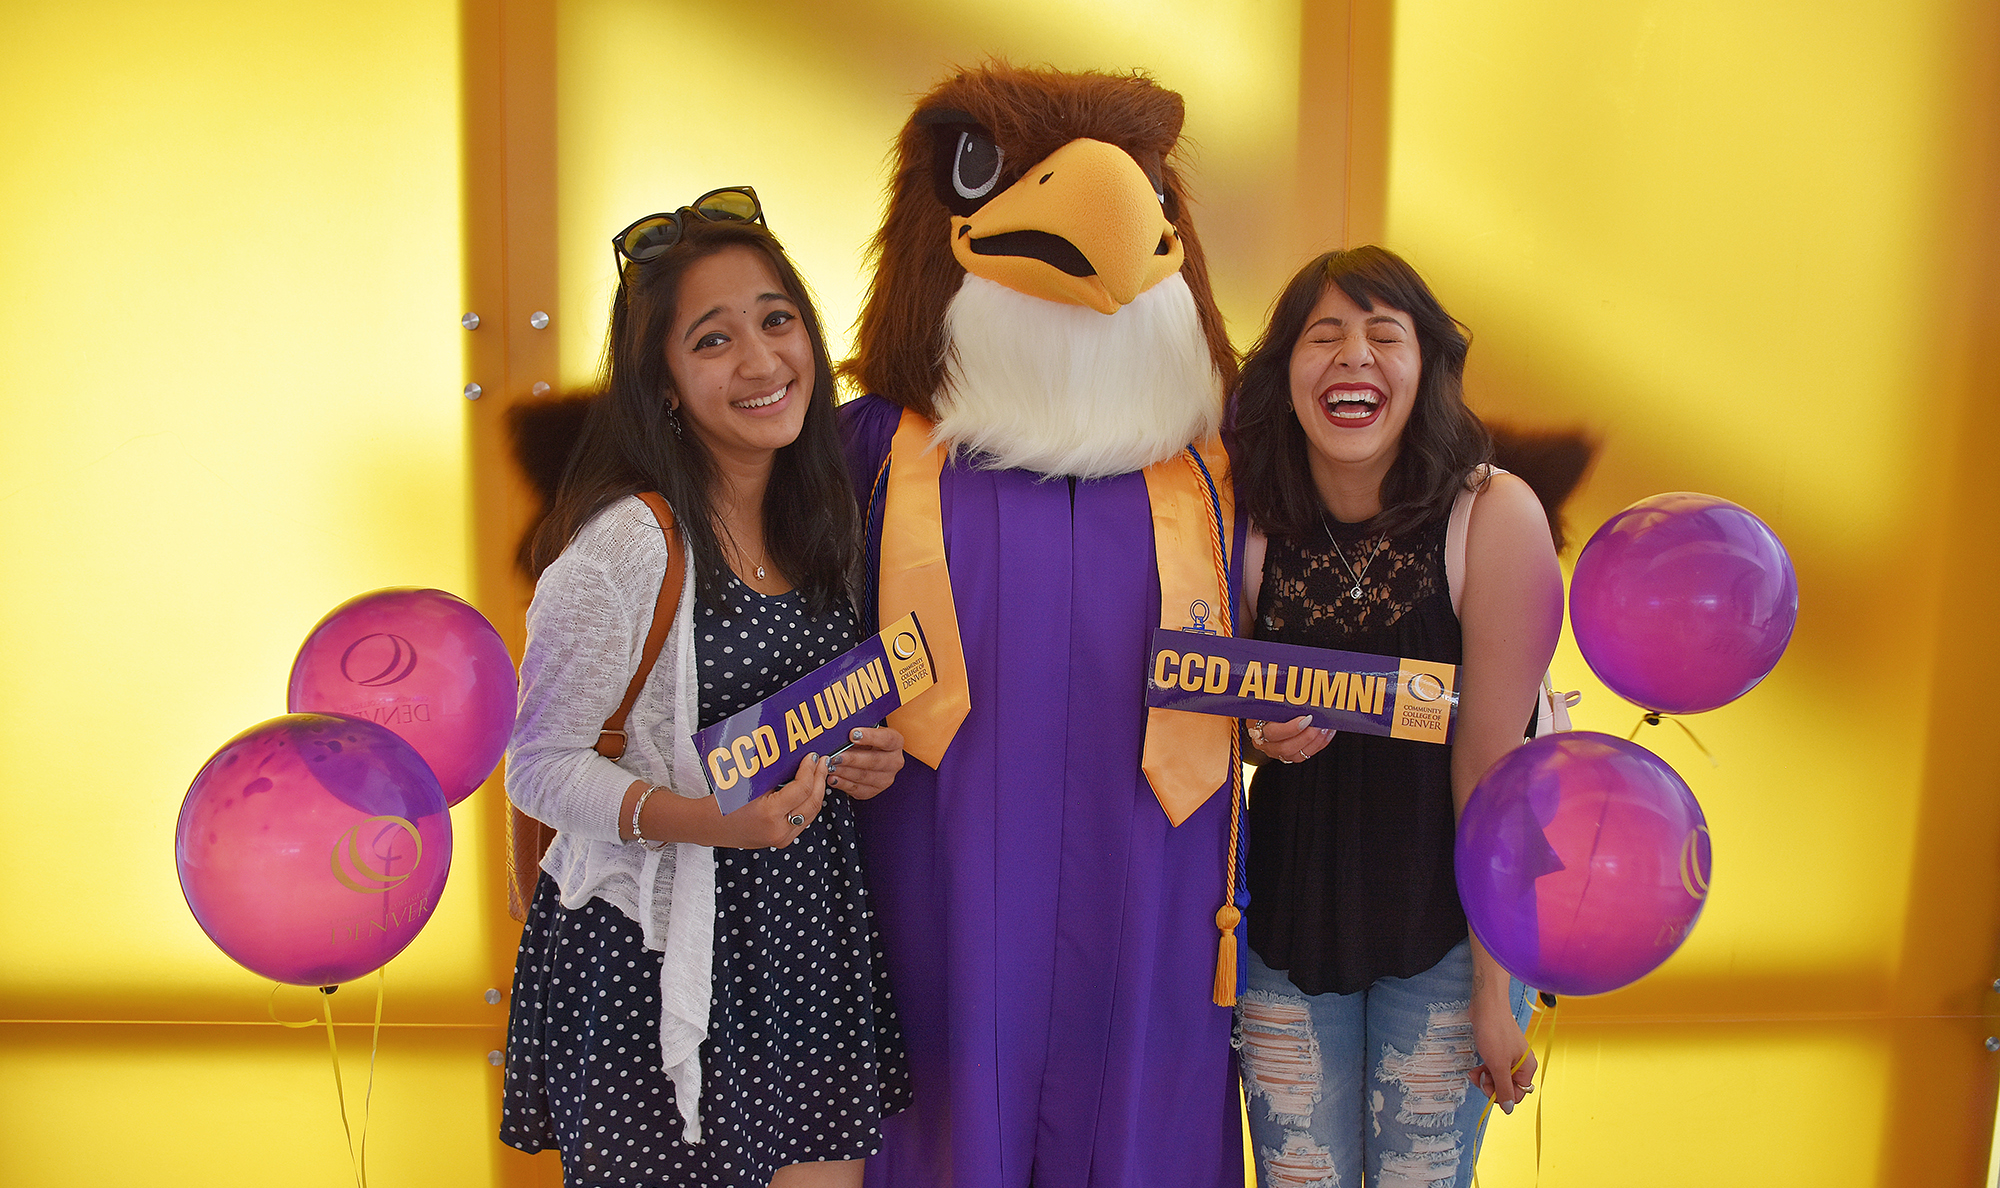 Two CCD Students holding an Alumni bumpersticker with the mascot